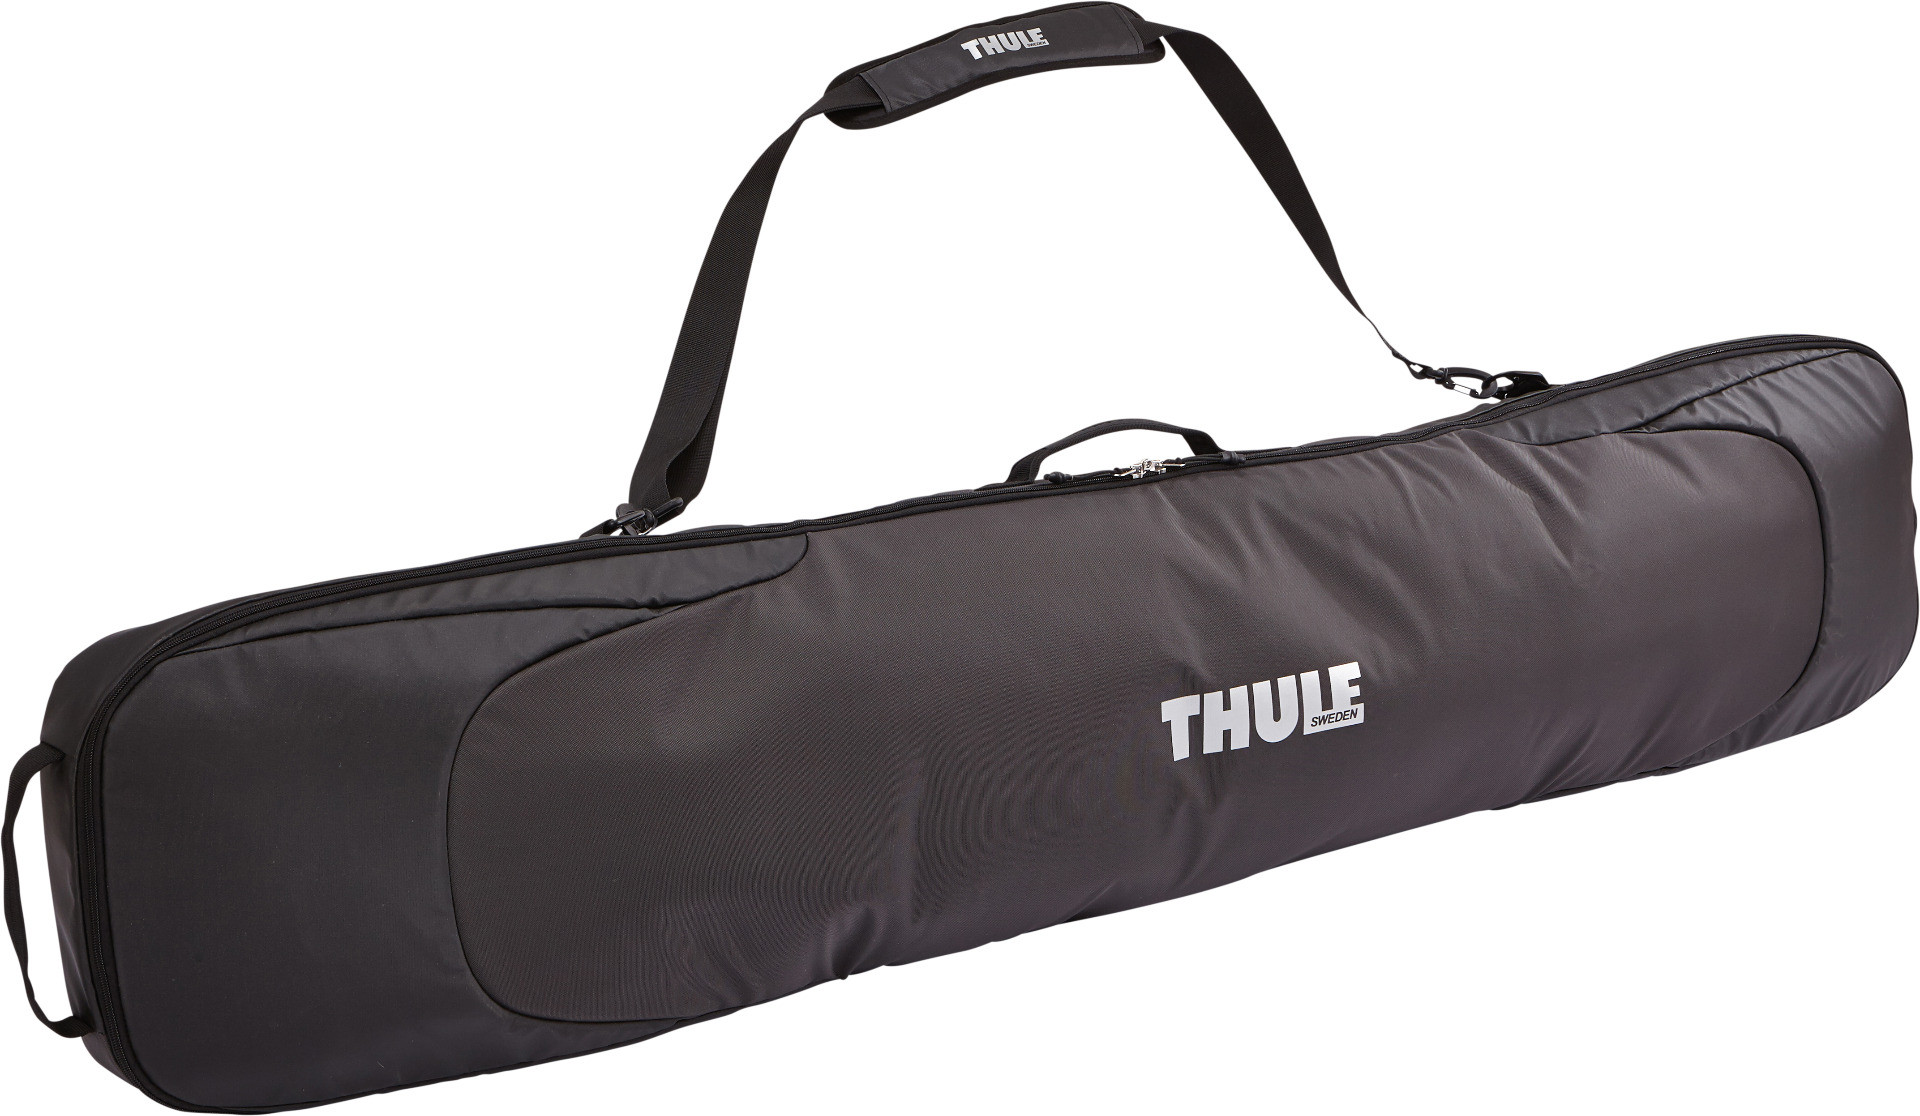 Thule RoundTrip Snowboard Carrier